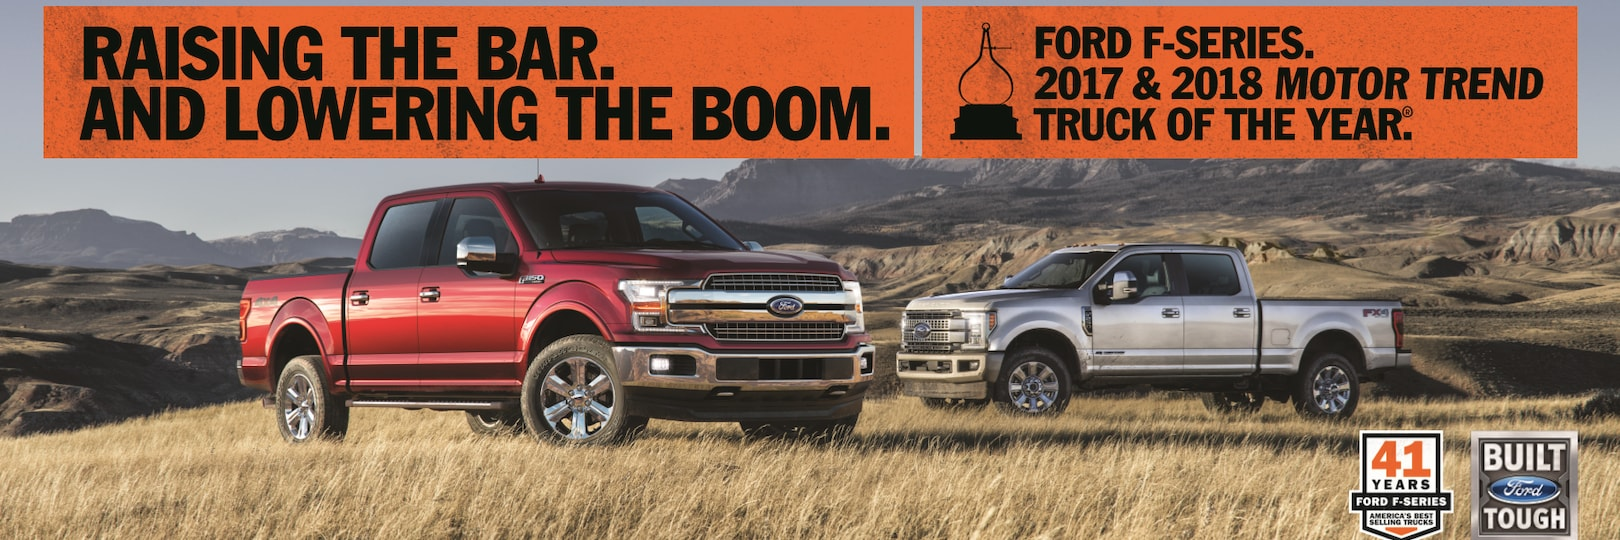 Metro Ford Sales and Service | Chicago Ford Dealer | New Ford ...